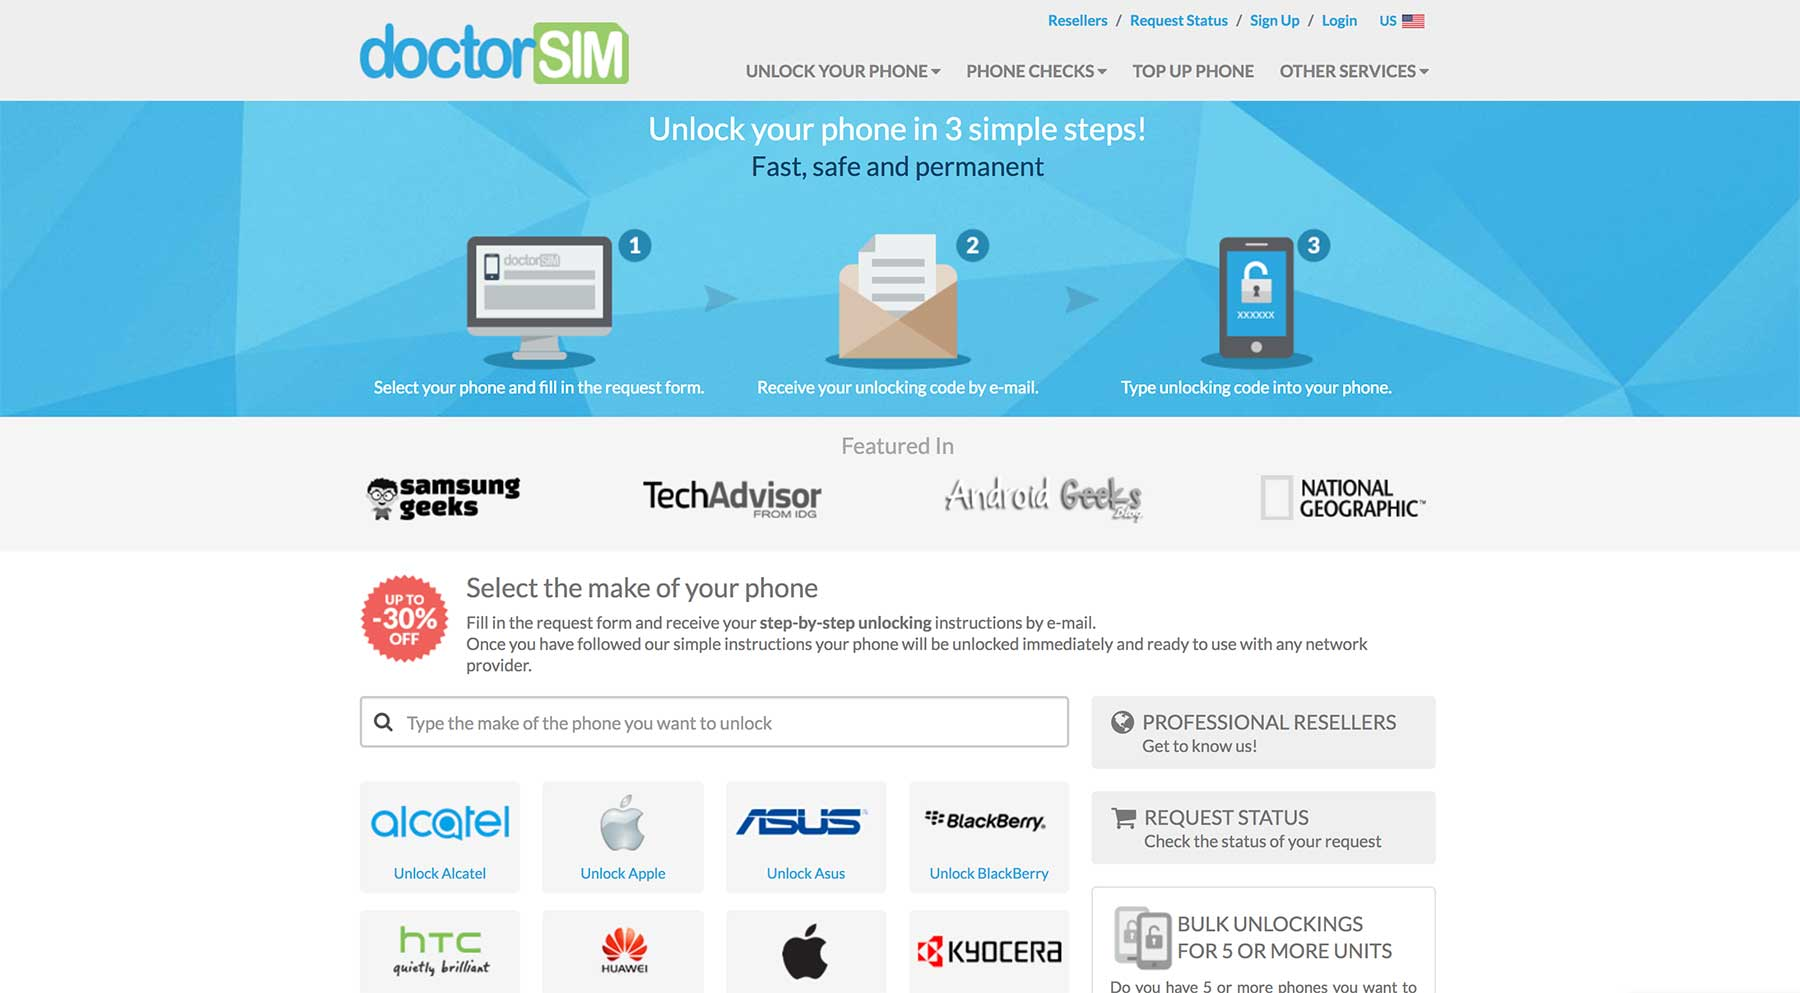 doctorSIM website